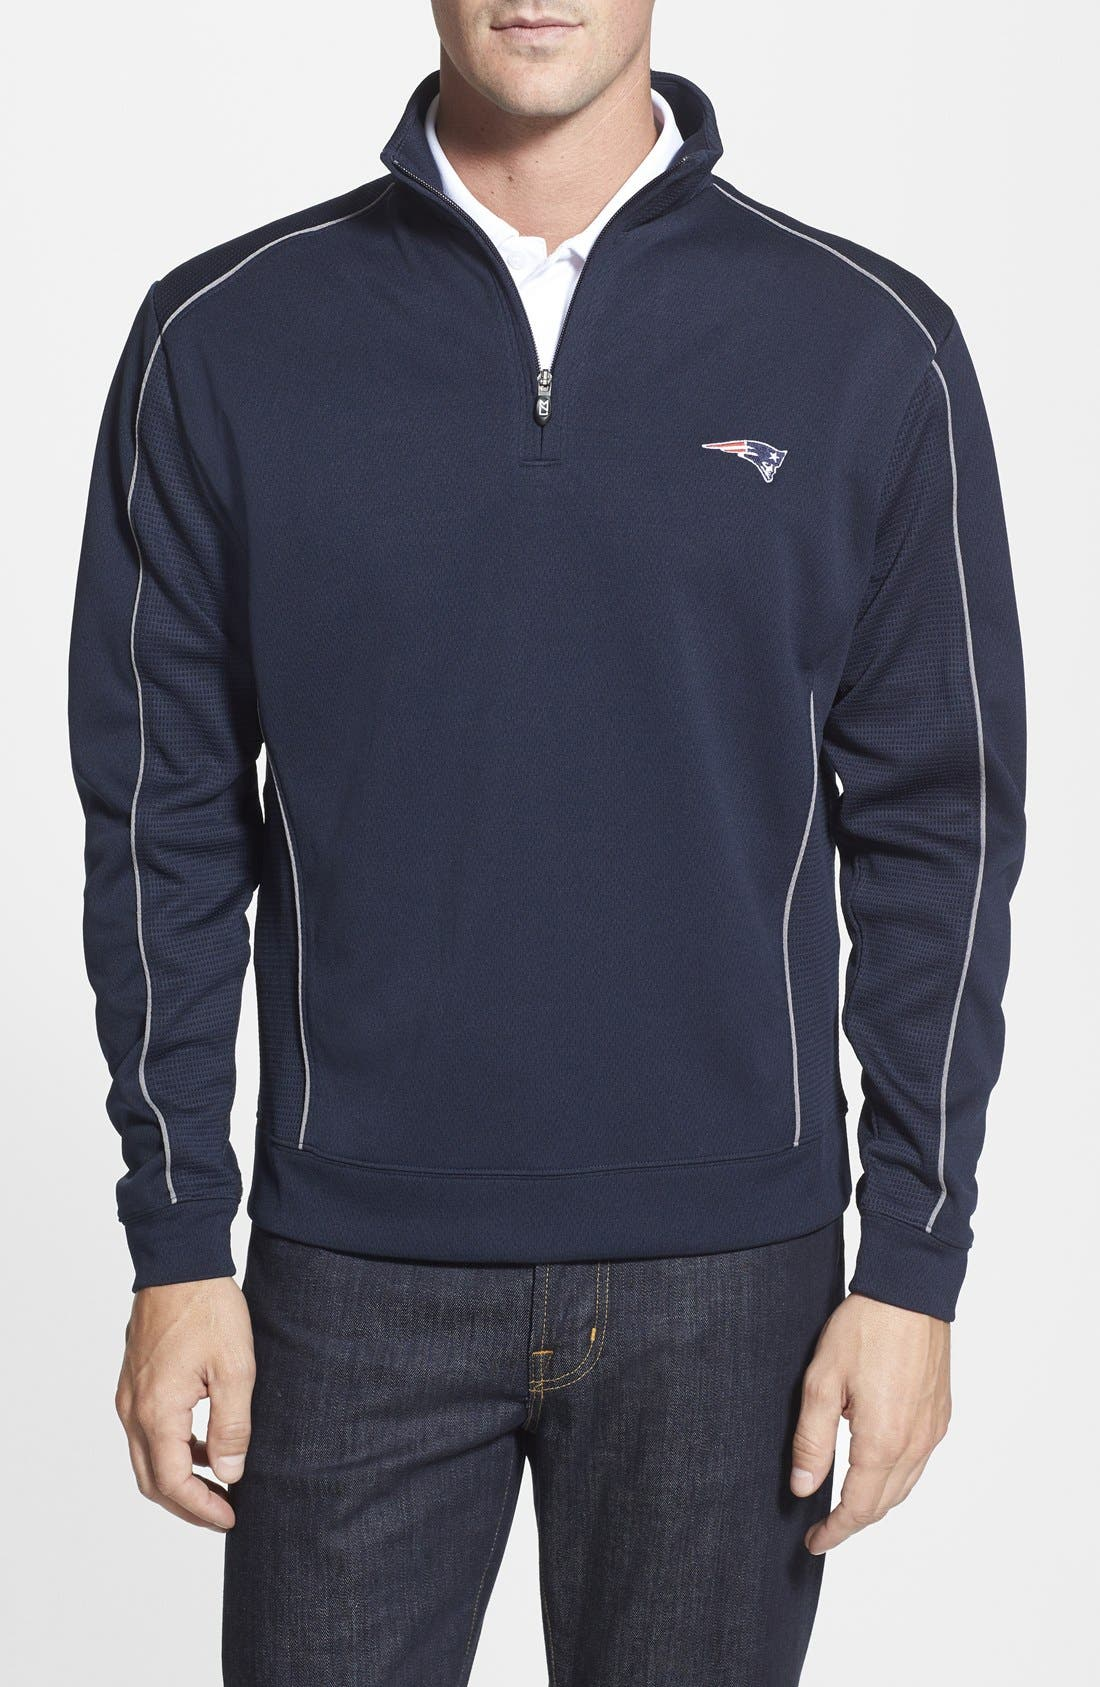 Cutter & Buck New England Patriots - Edge DryTec Moisture Wicking Half Zip Pullover